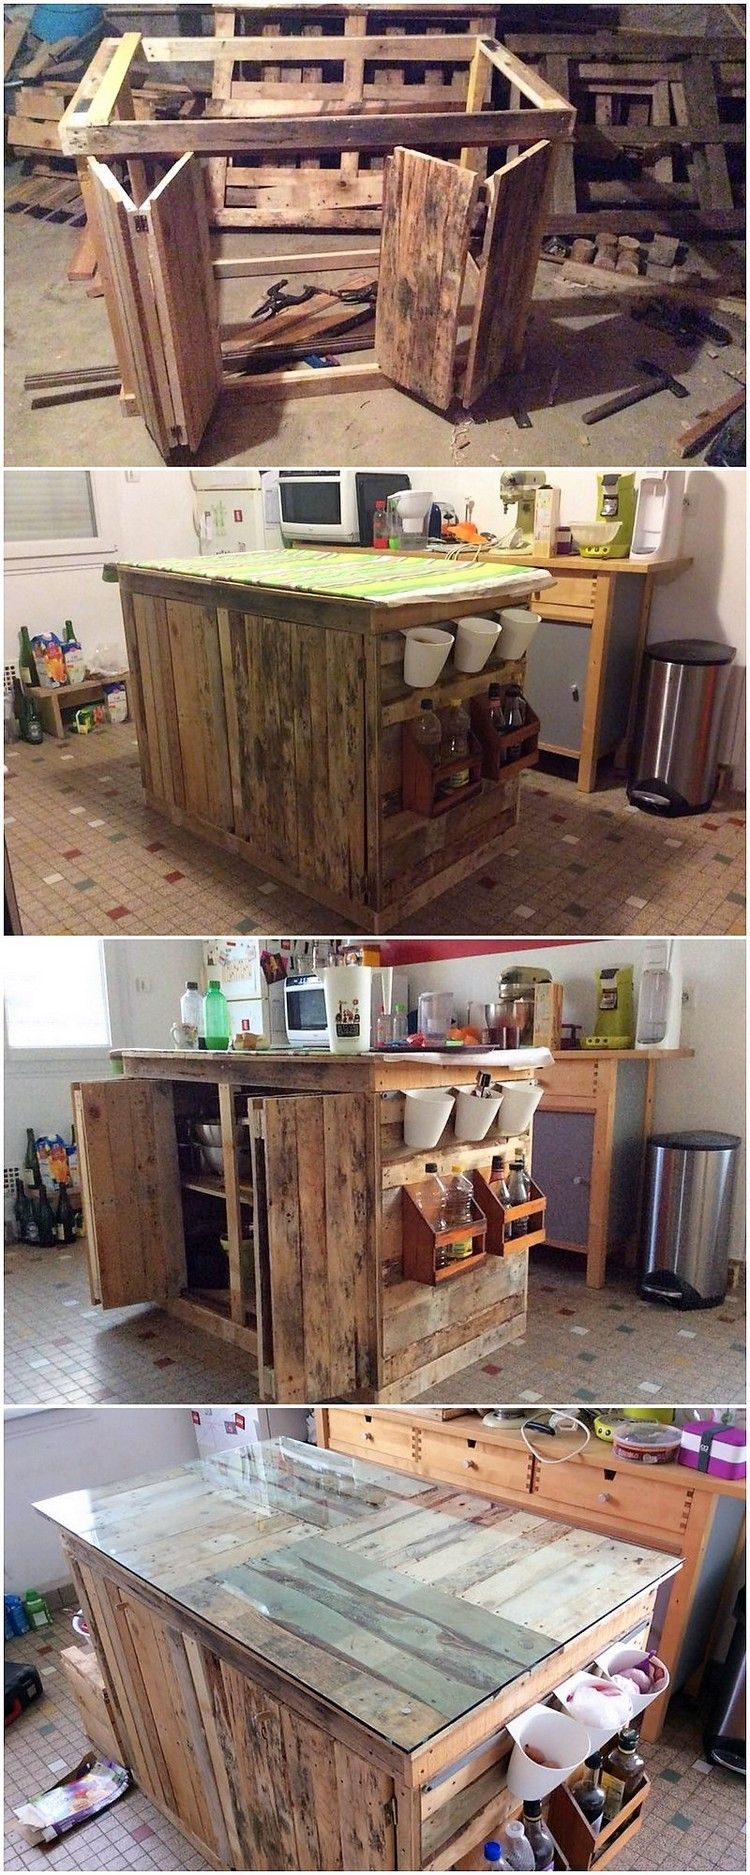 This Is A Small And Yet An Impression Art Work Design Of The Wood Pallet In The Style Of The Kitchen Cabinet O Pallet Diy Diy Pallet Projects Pallet Home Decor